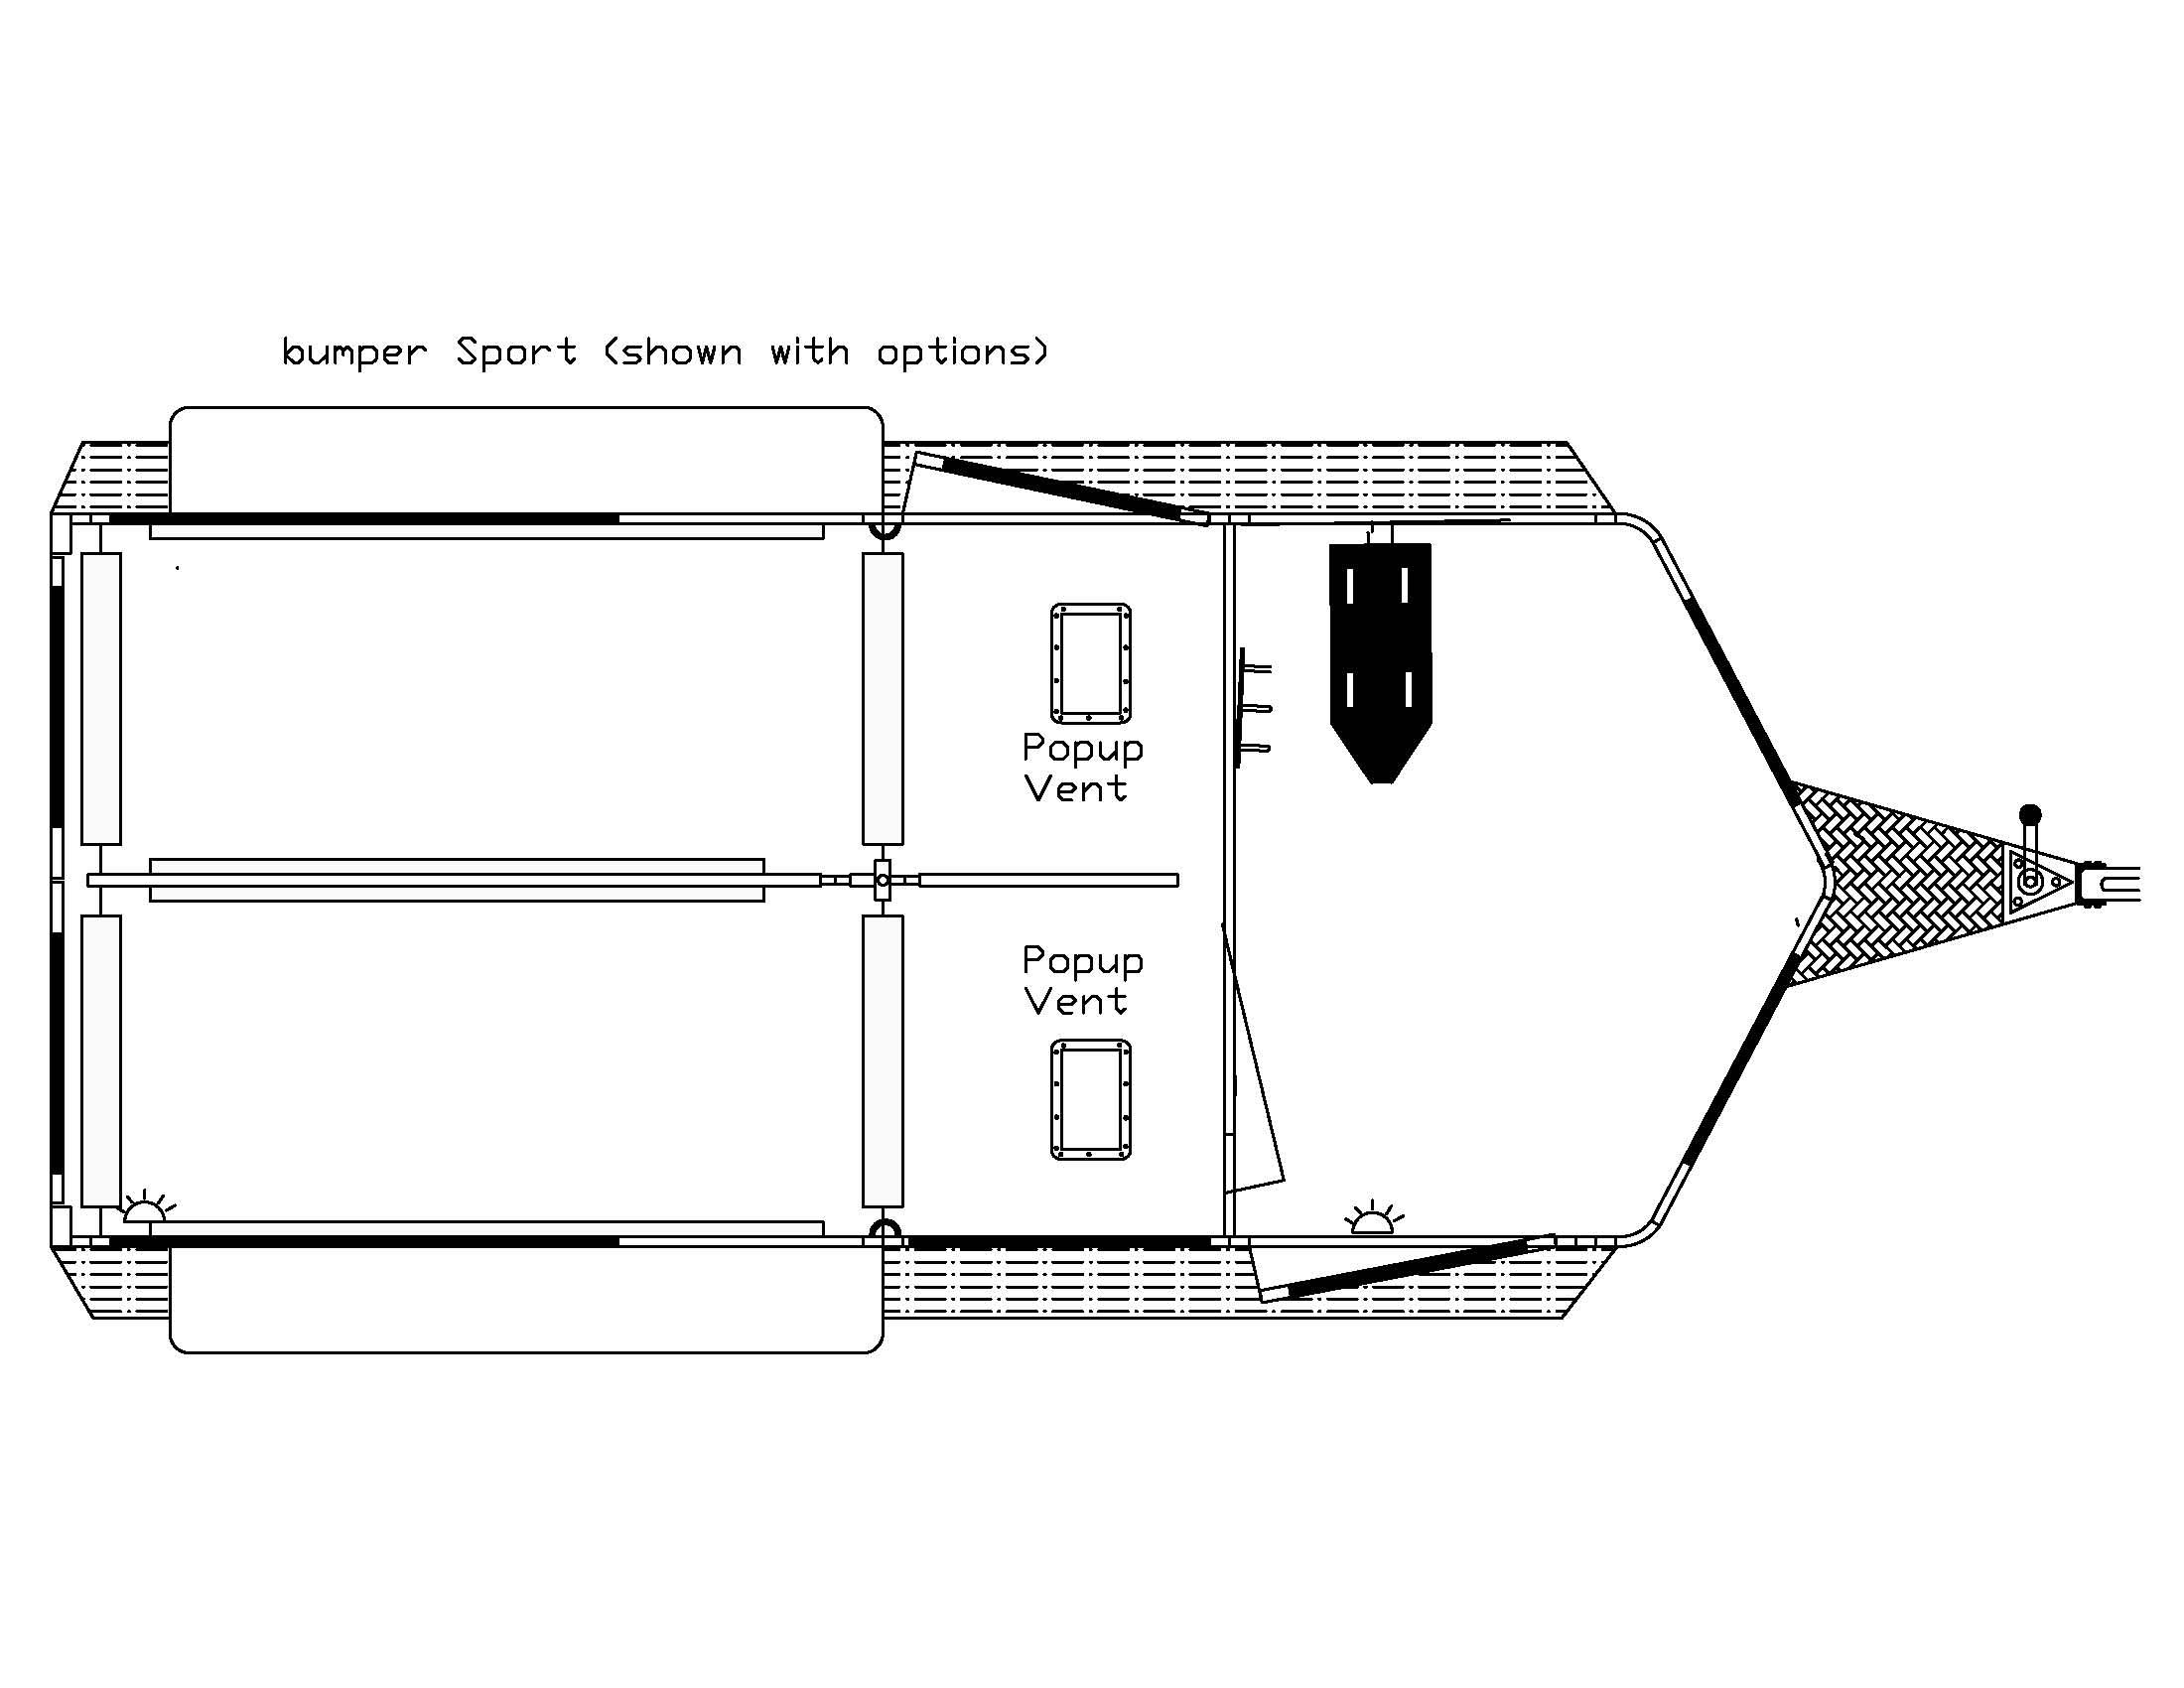 Double D trailers floor plans, 21,500 with options